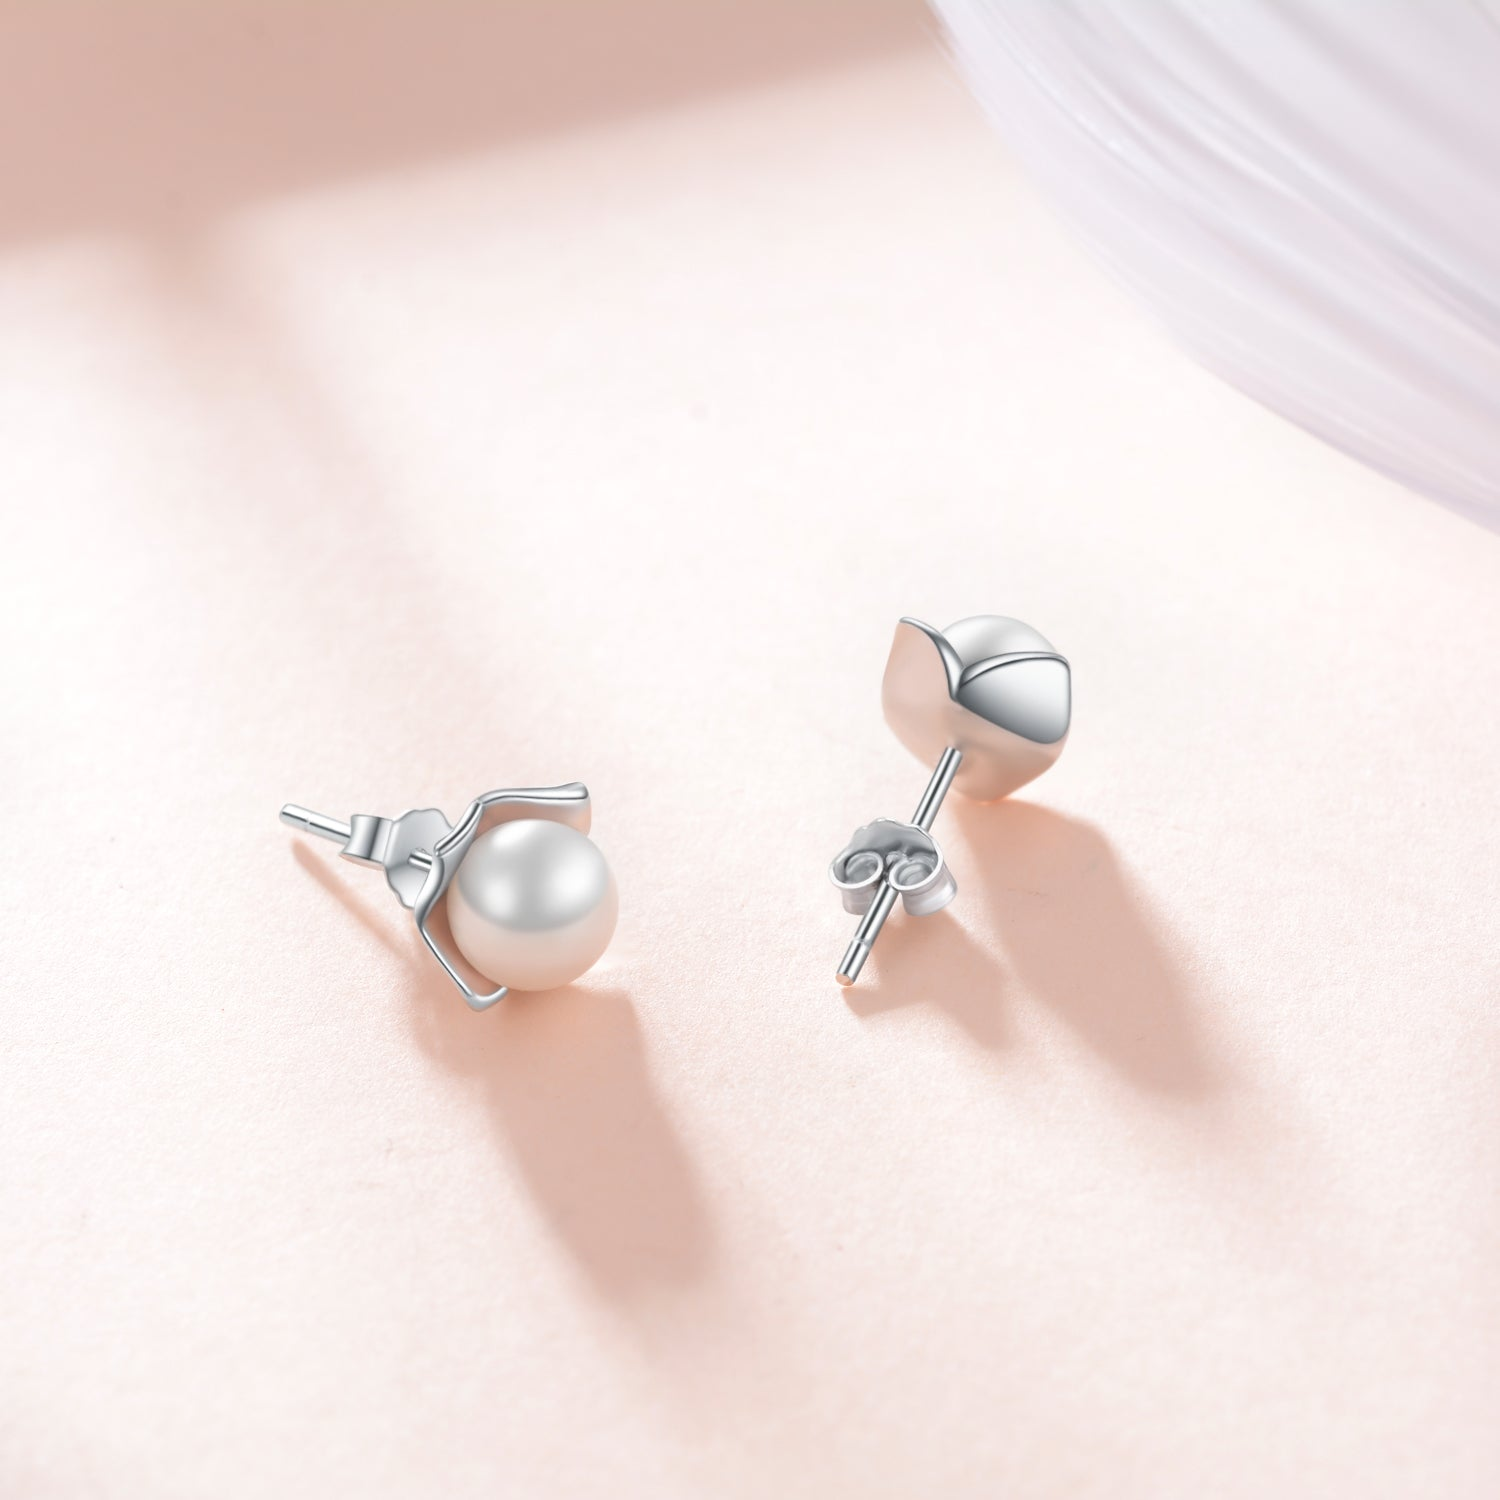 Square Pearl Earrings Engaged Married Bride Bridesmaid Jewelry